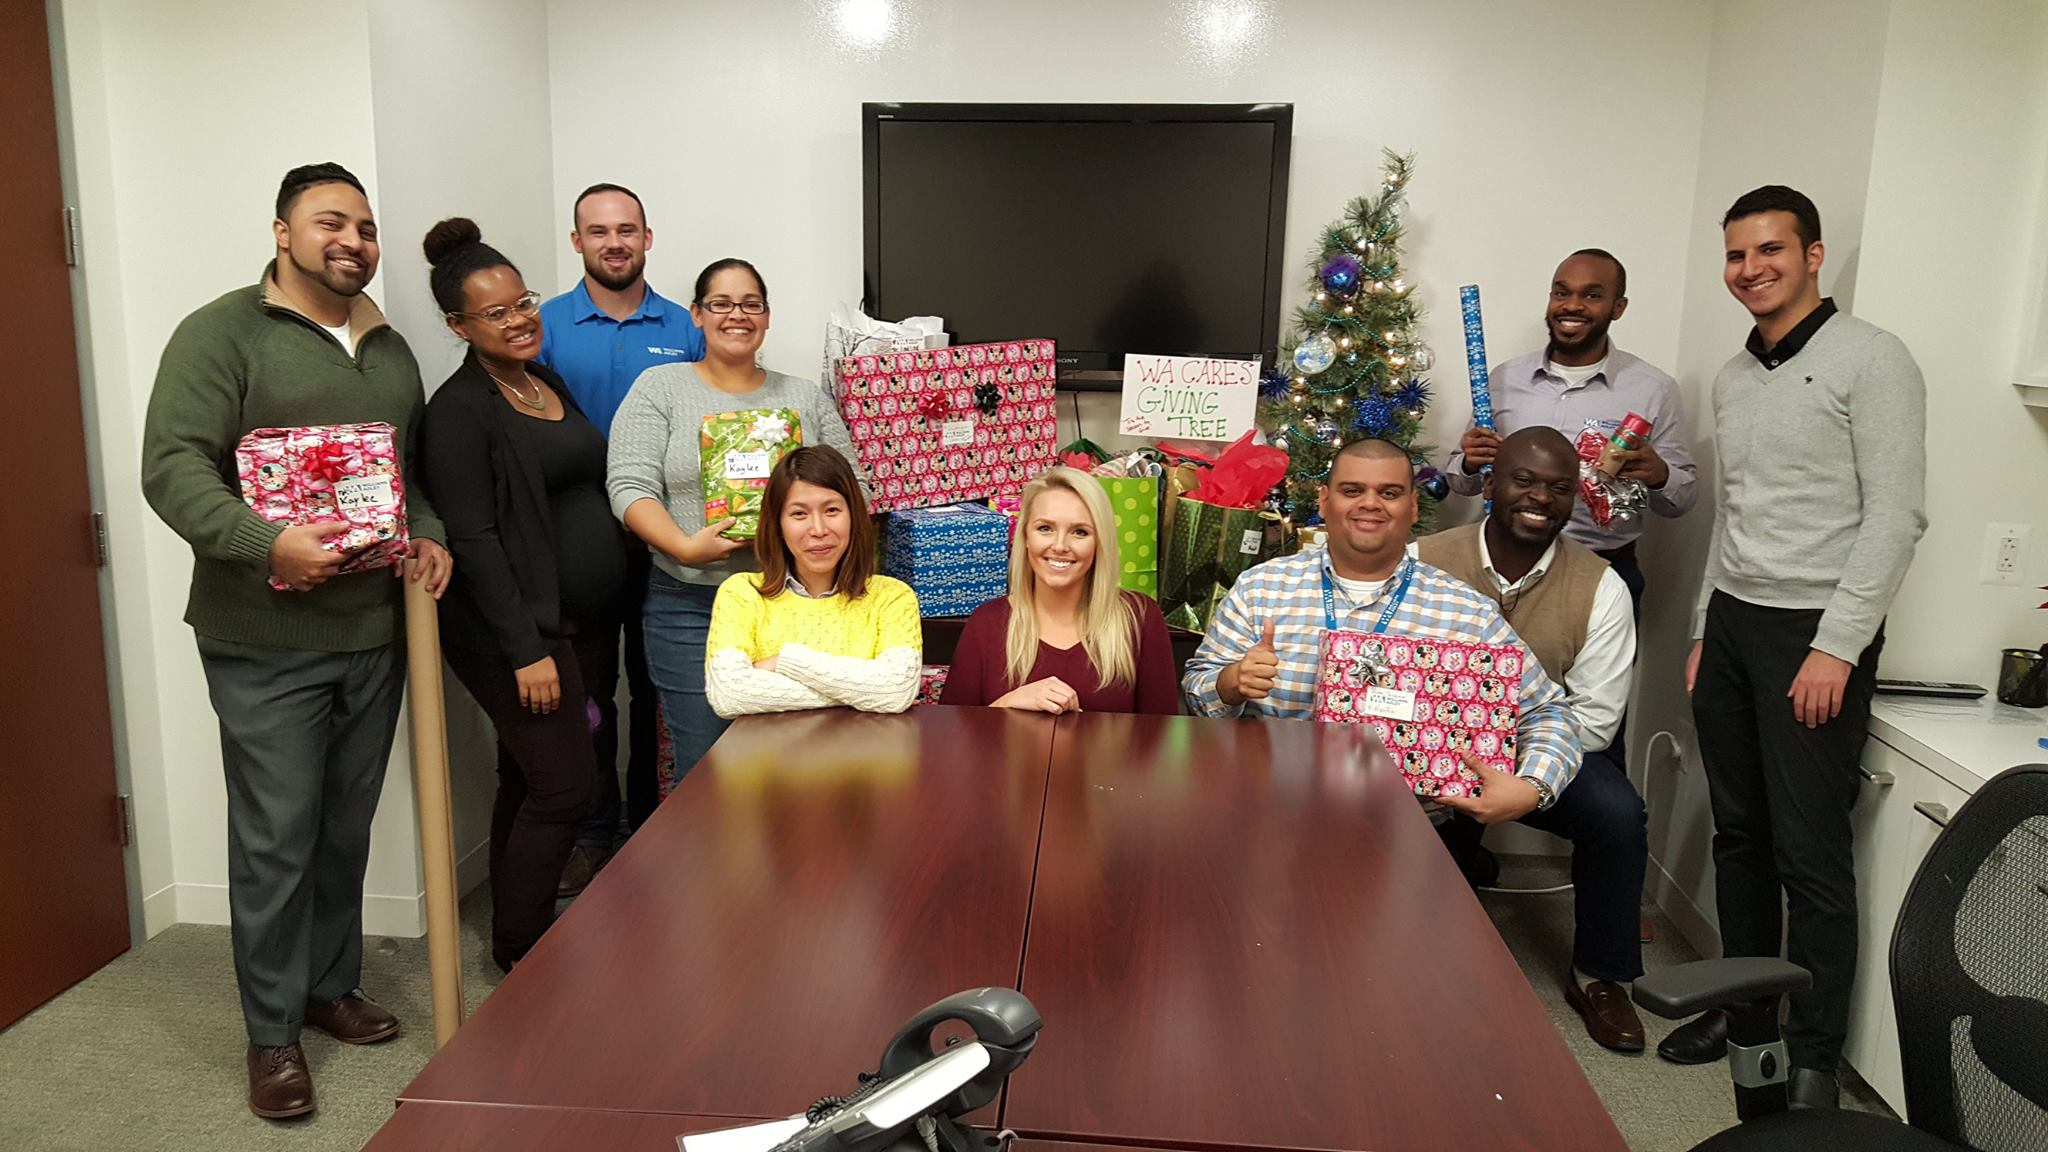 Giving Tree - Each year WA Cares works with a local organization to support a local family in celebrating the holiday season.